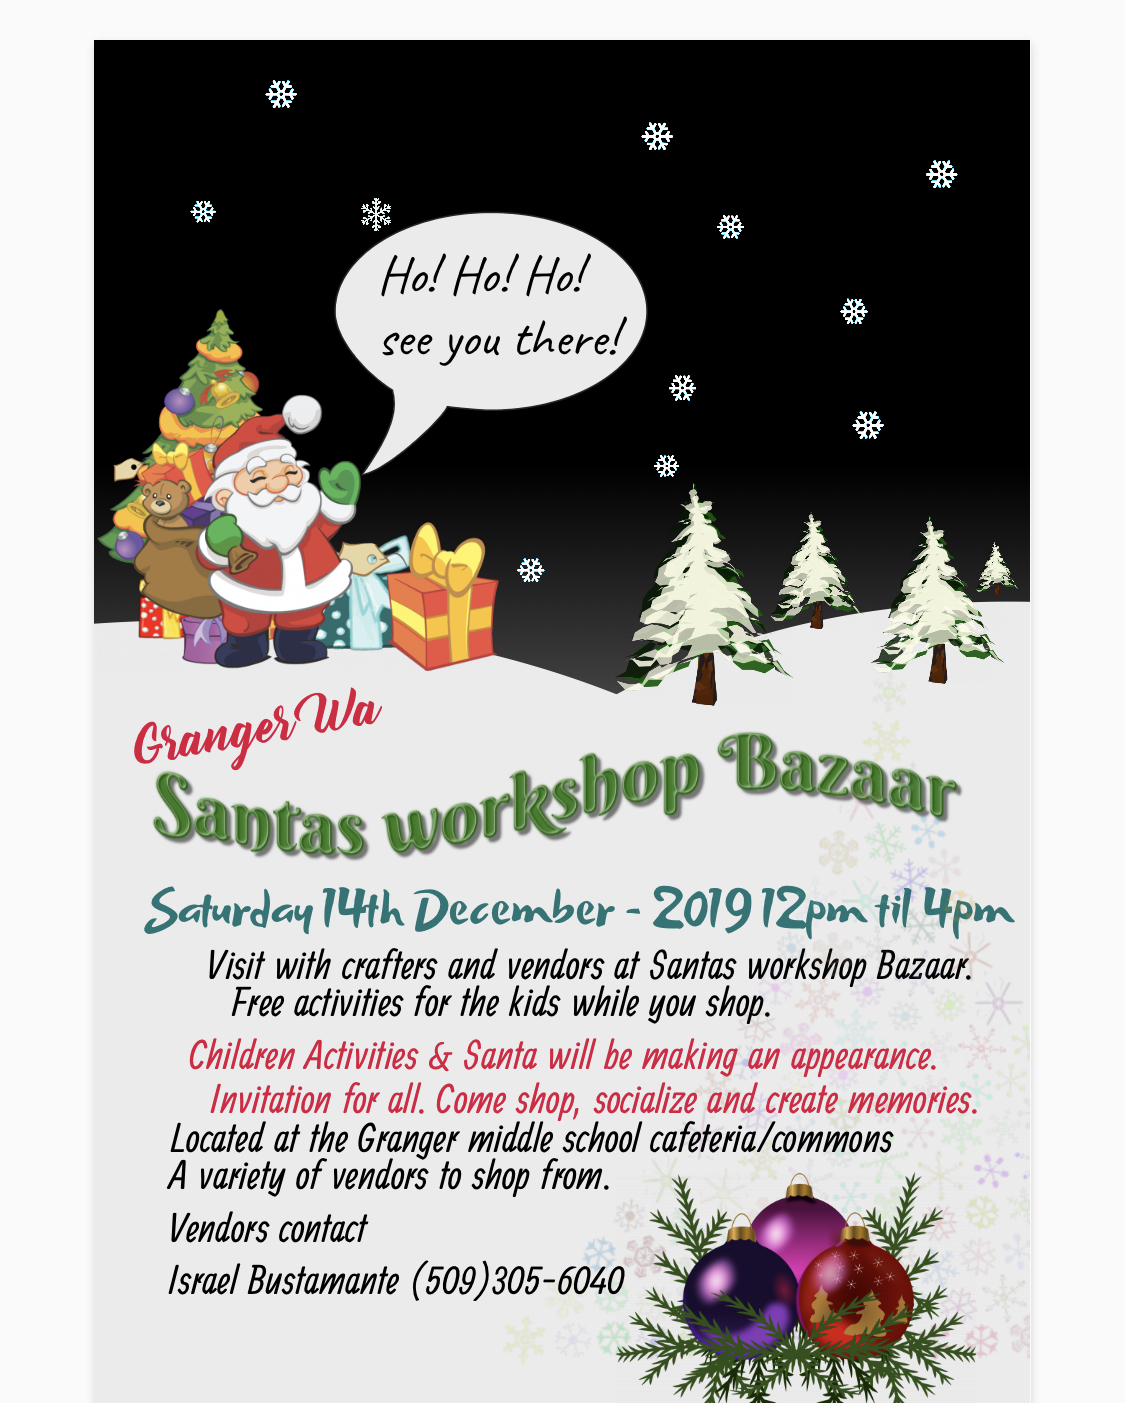 Granger Santa's Workshop Bazaar @ Granger Middle School Cafeteria/Commons